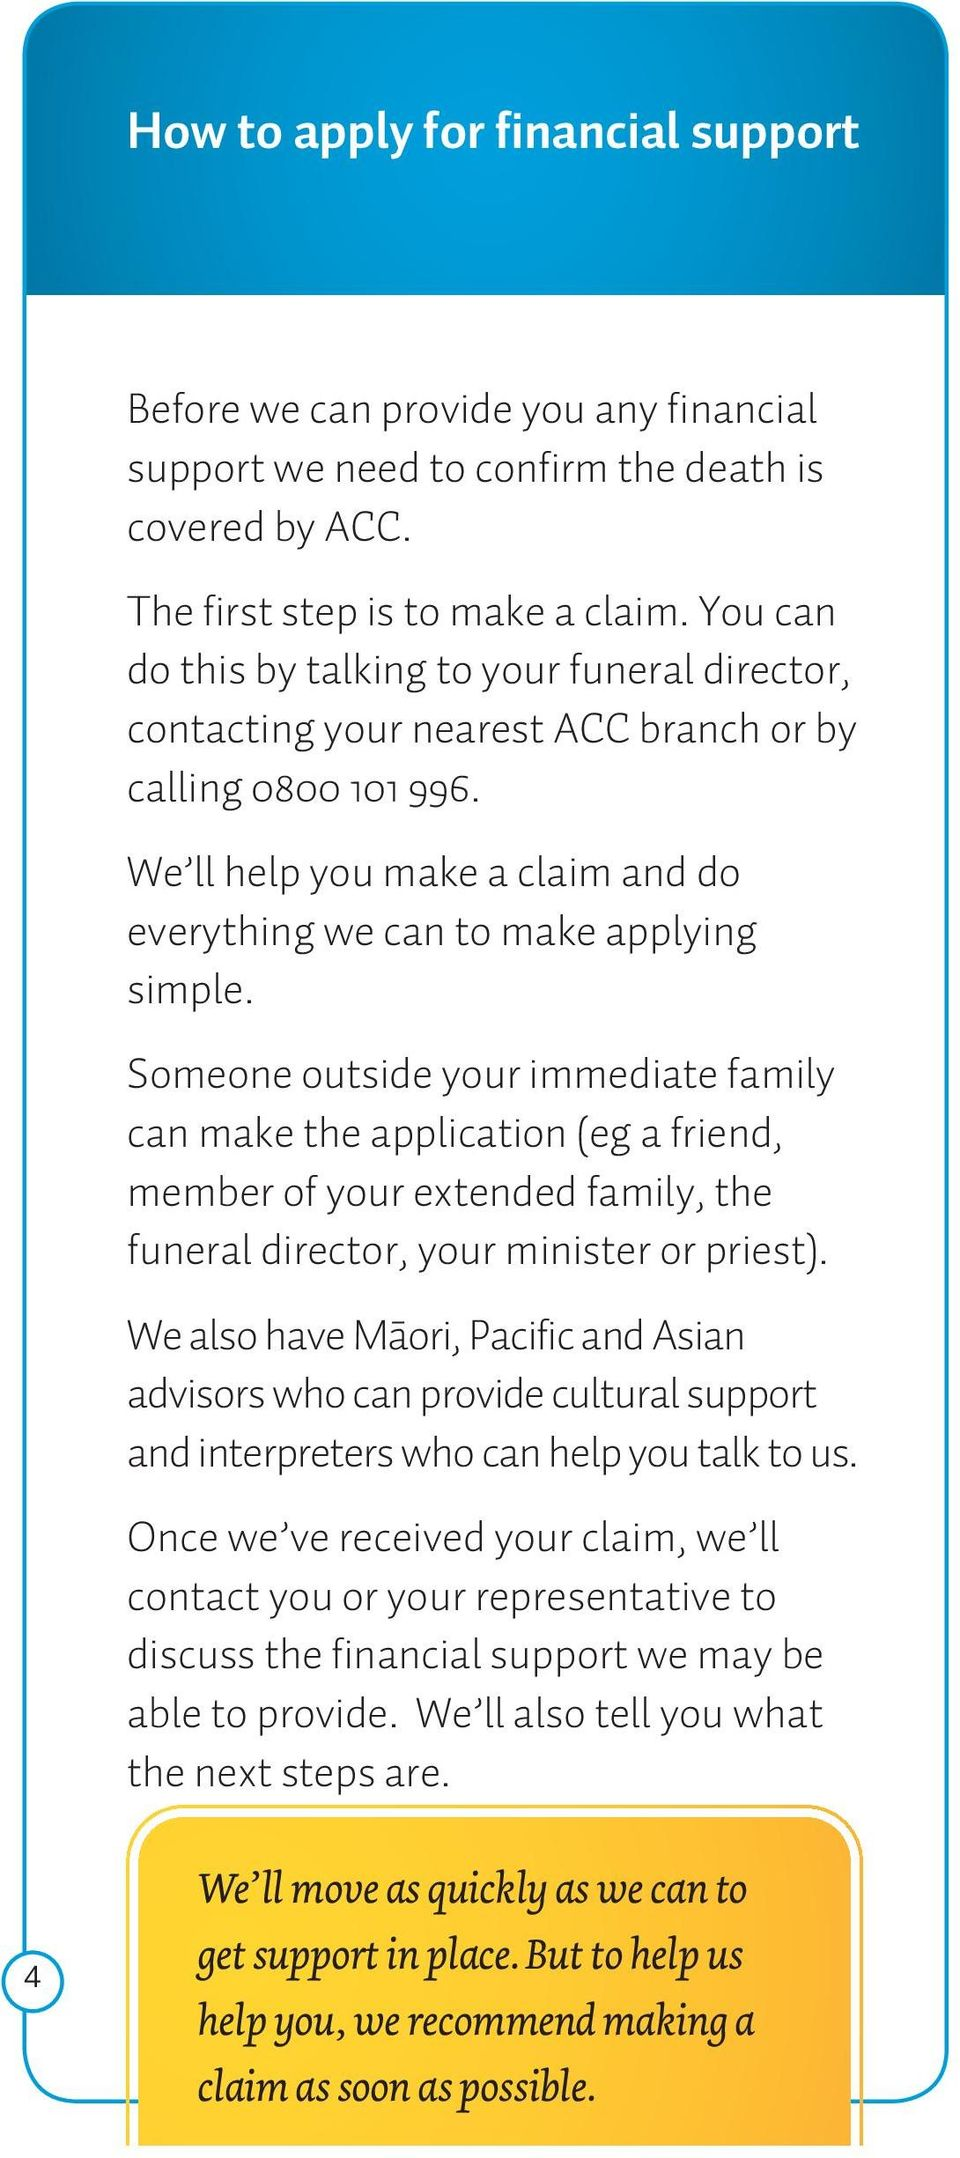 Someone outside your immediate family can make the application (eg a friend, member of your extended family, the funeral director, your minister or priest).